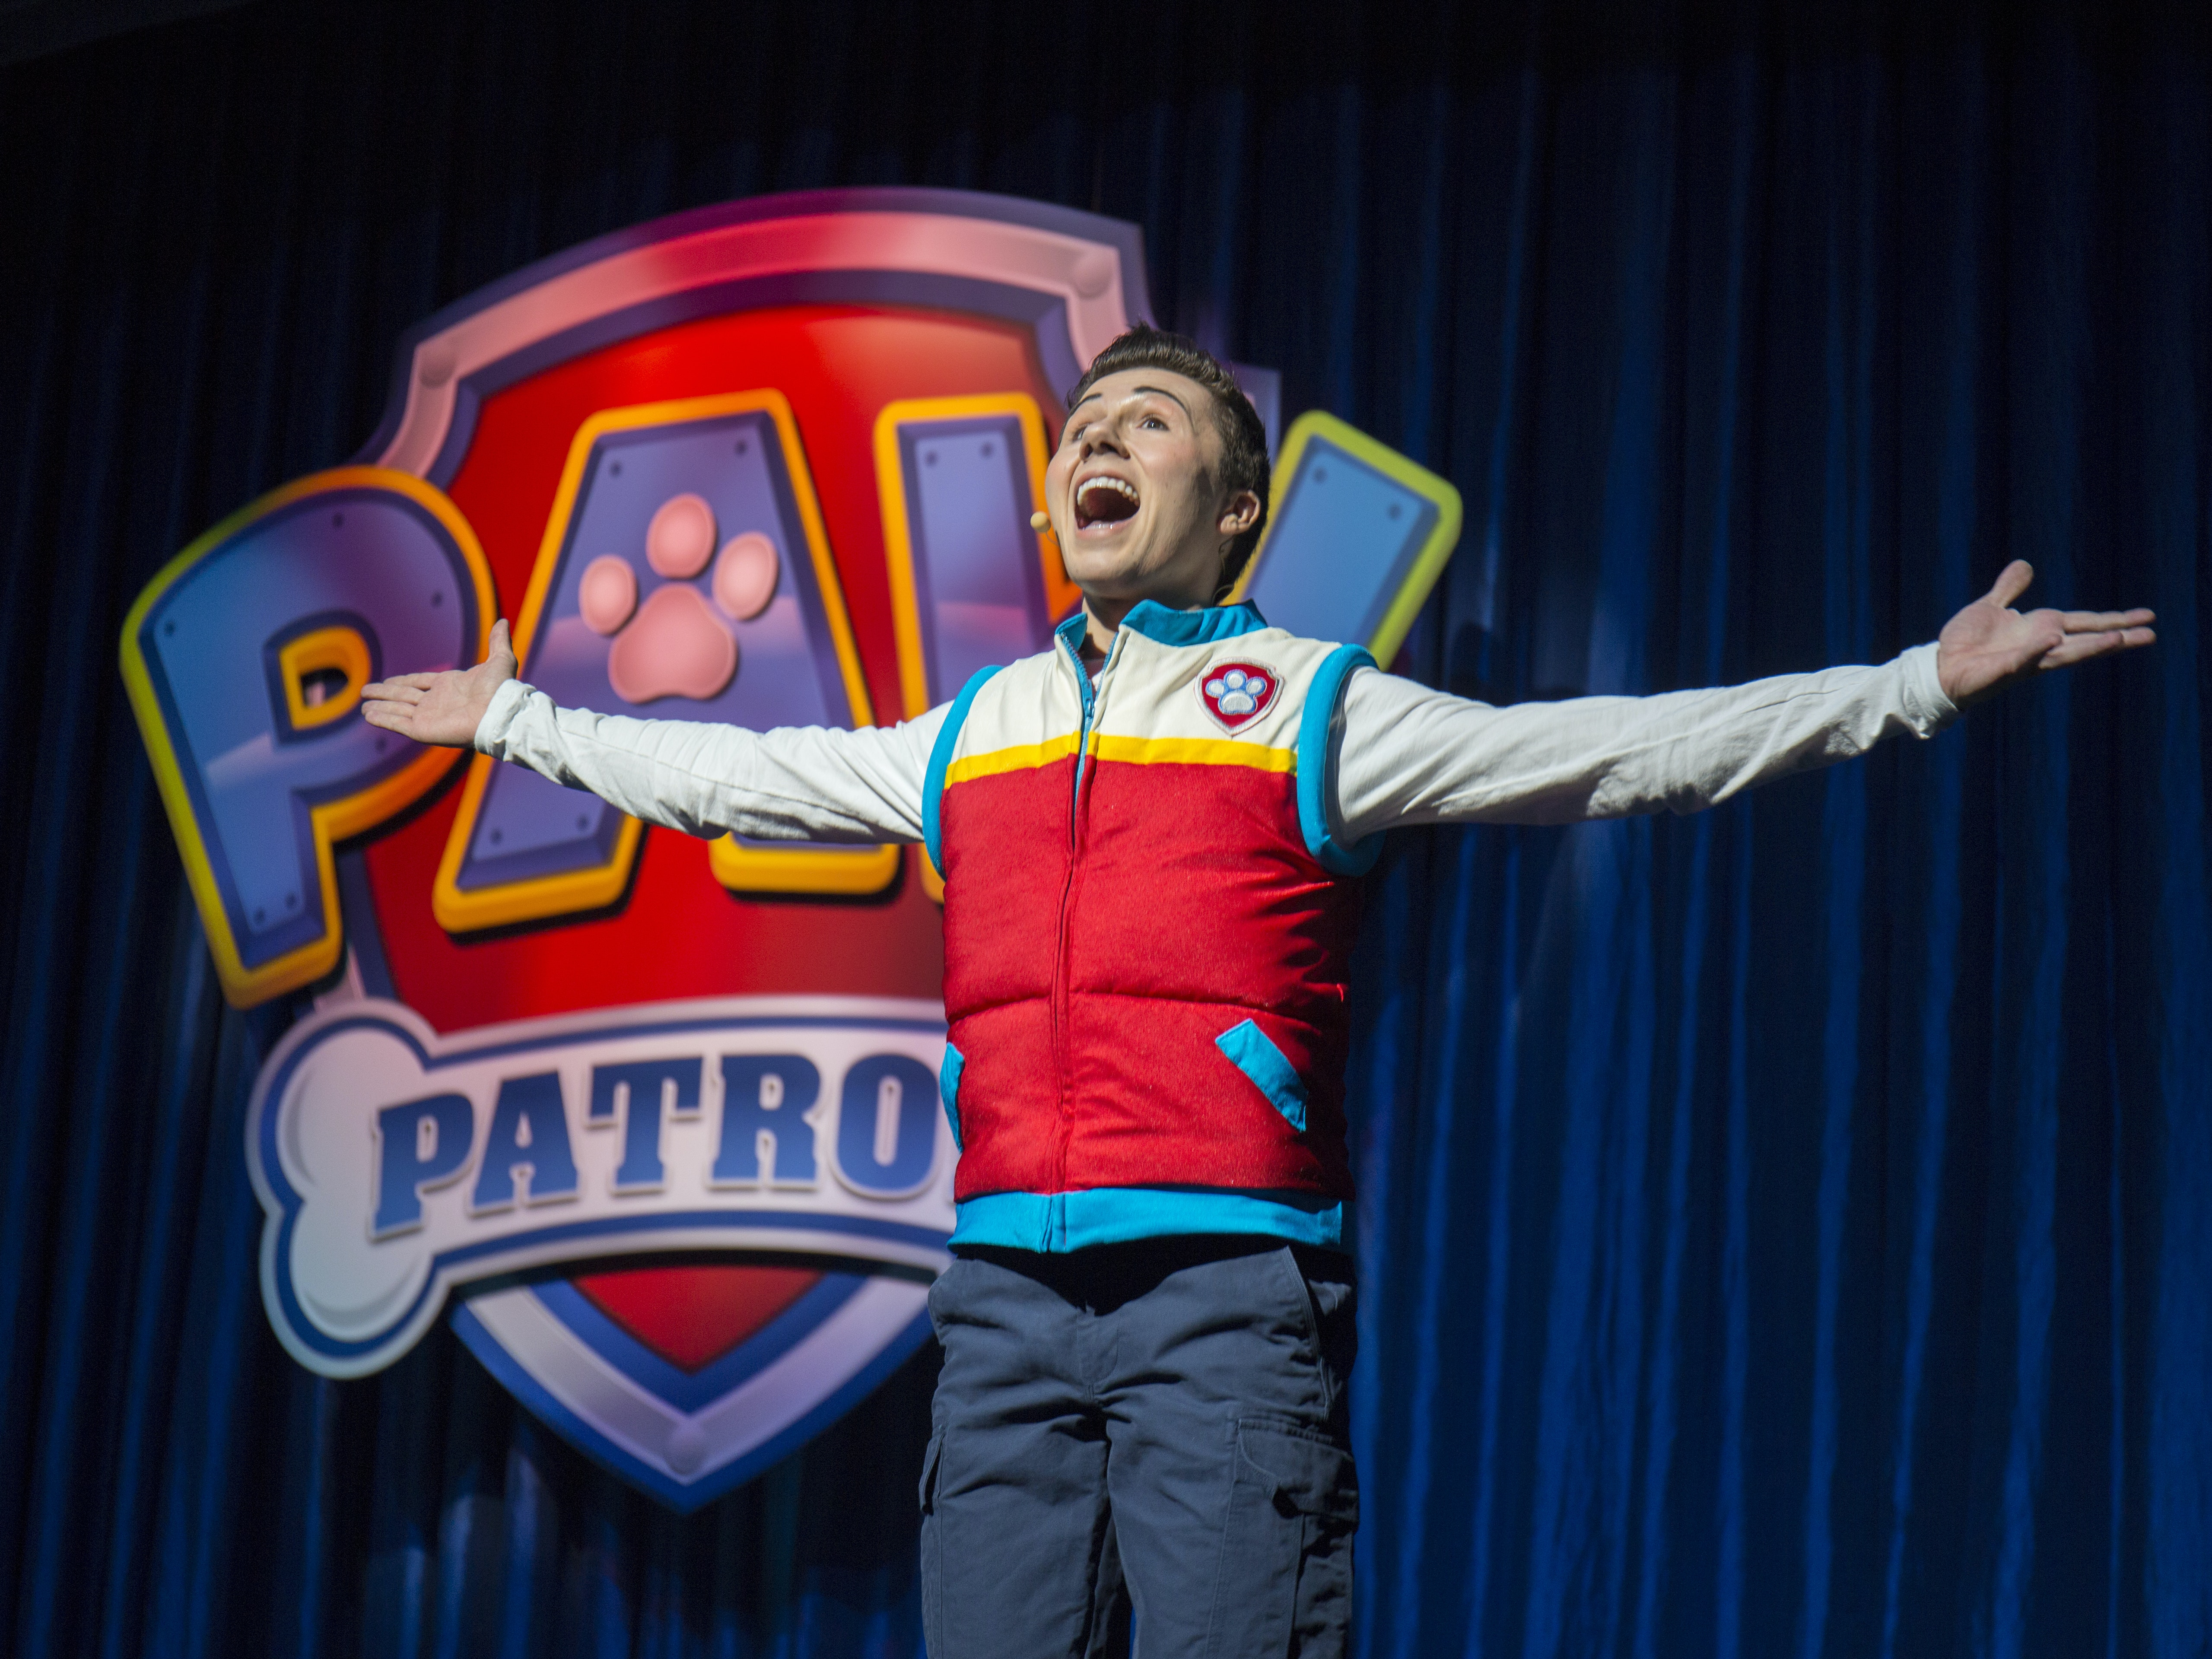 Paw PatrolLive  sweepstakes